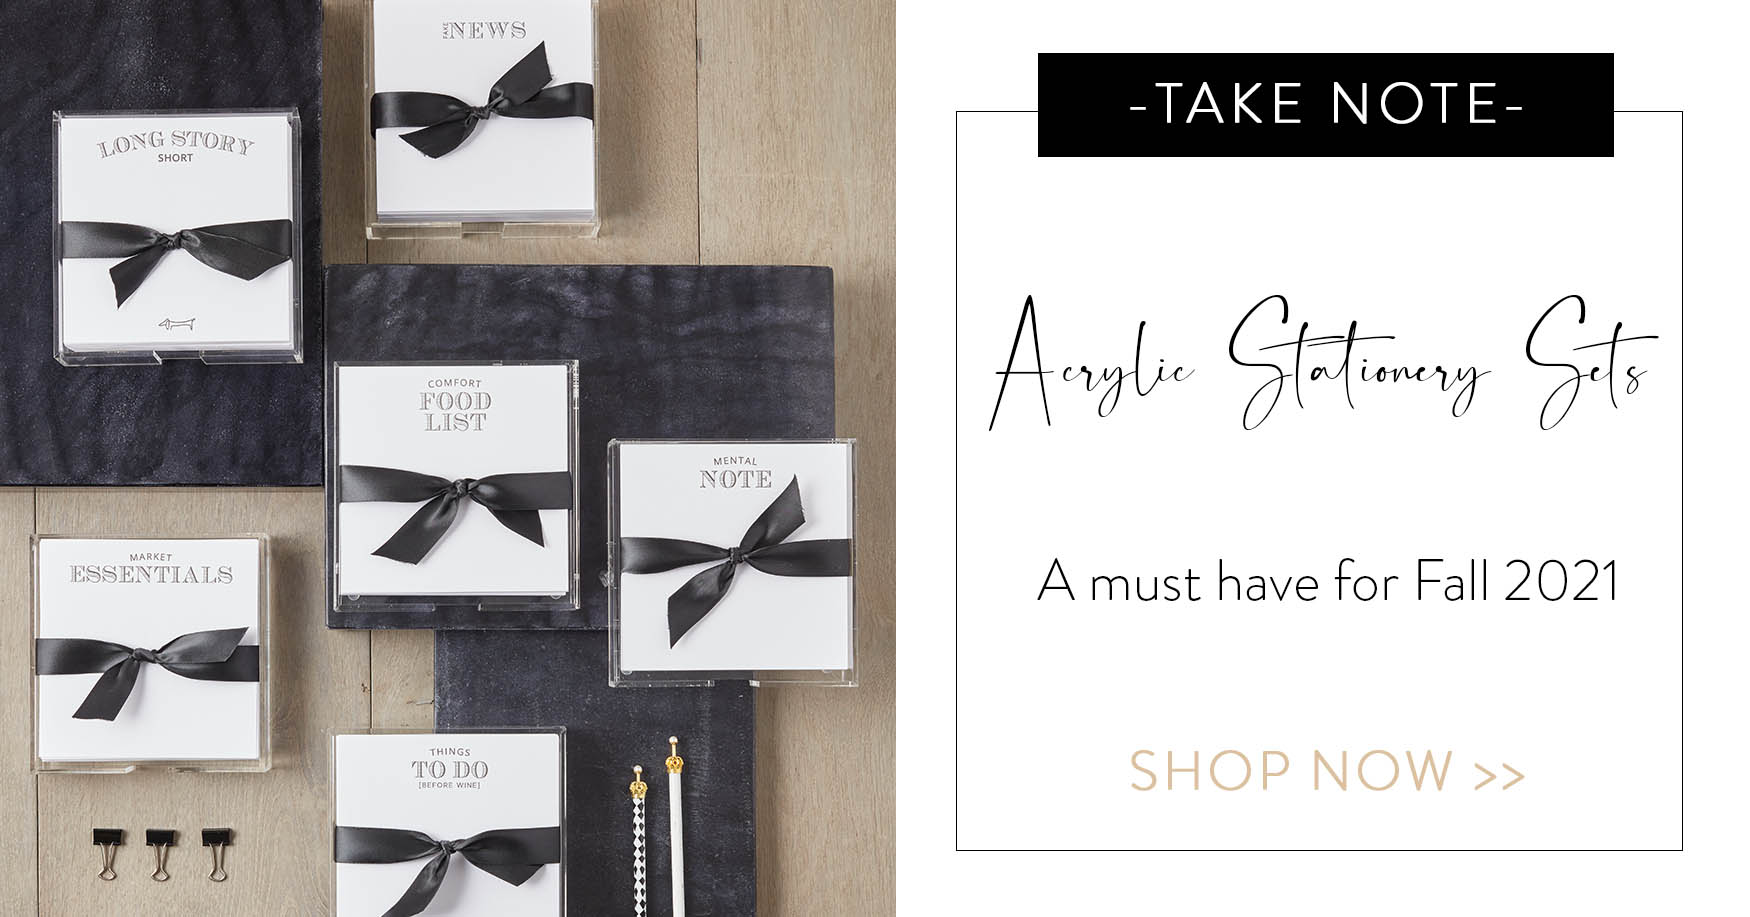 Take Note! Acrylic Stationery Sets - A must have for Fall 2021. Shop now